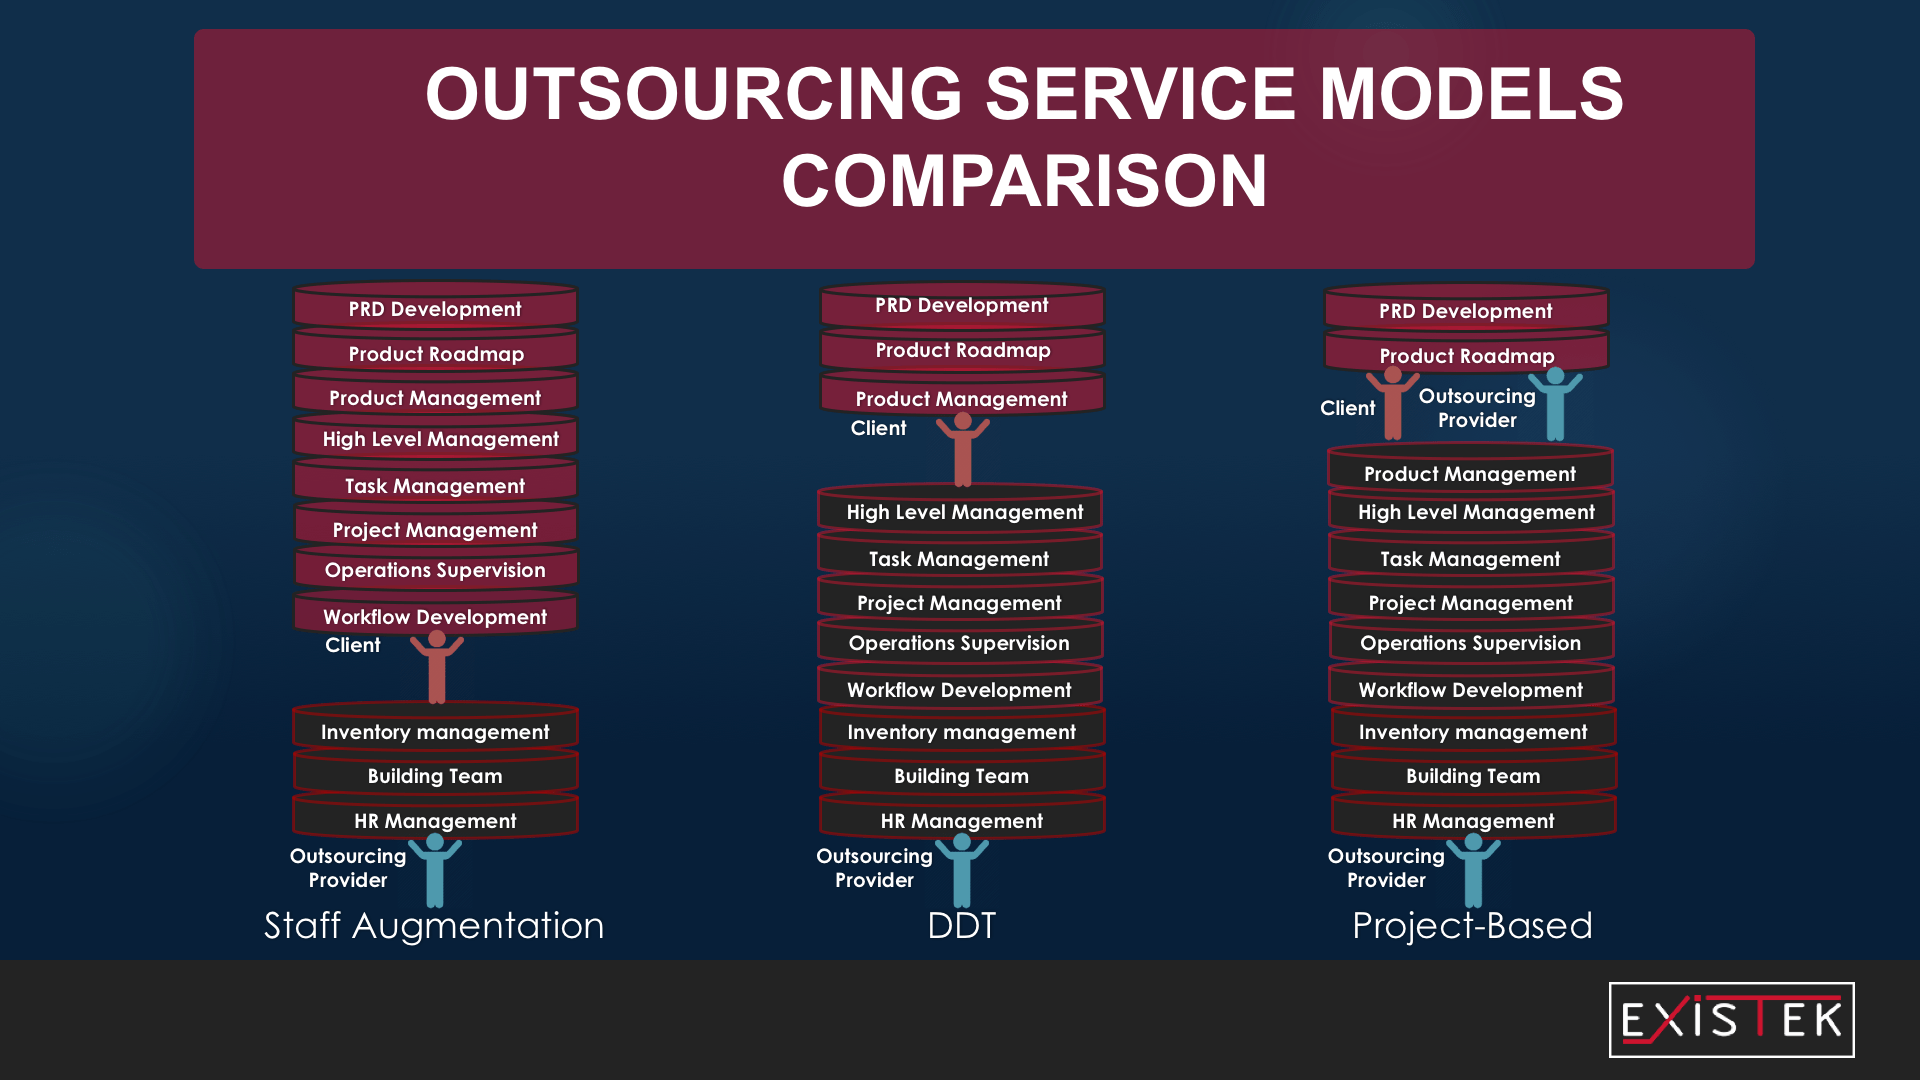 dedicated software development team model comparison with other offshore development models